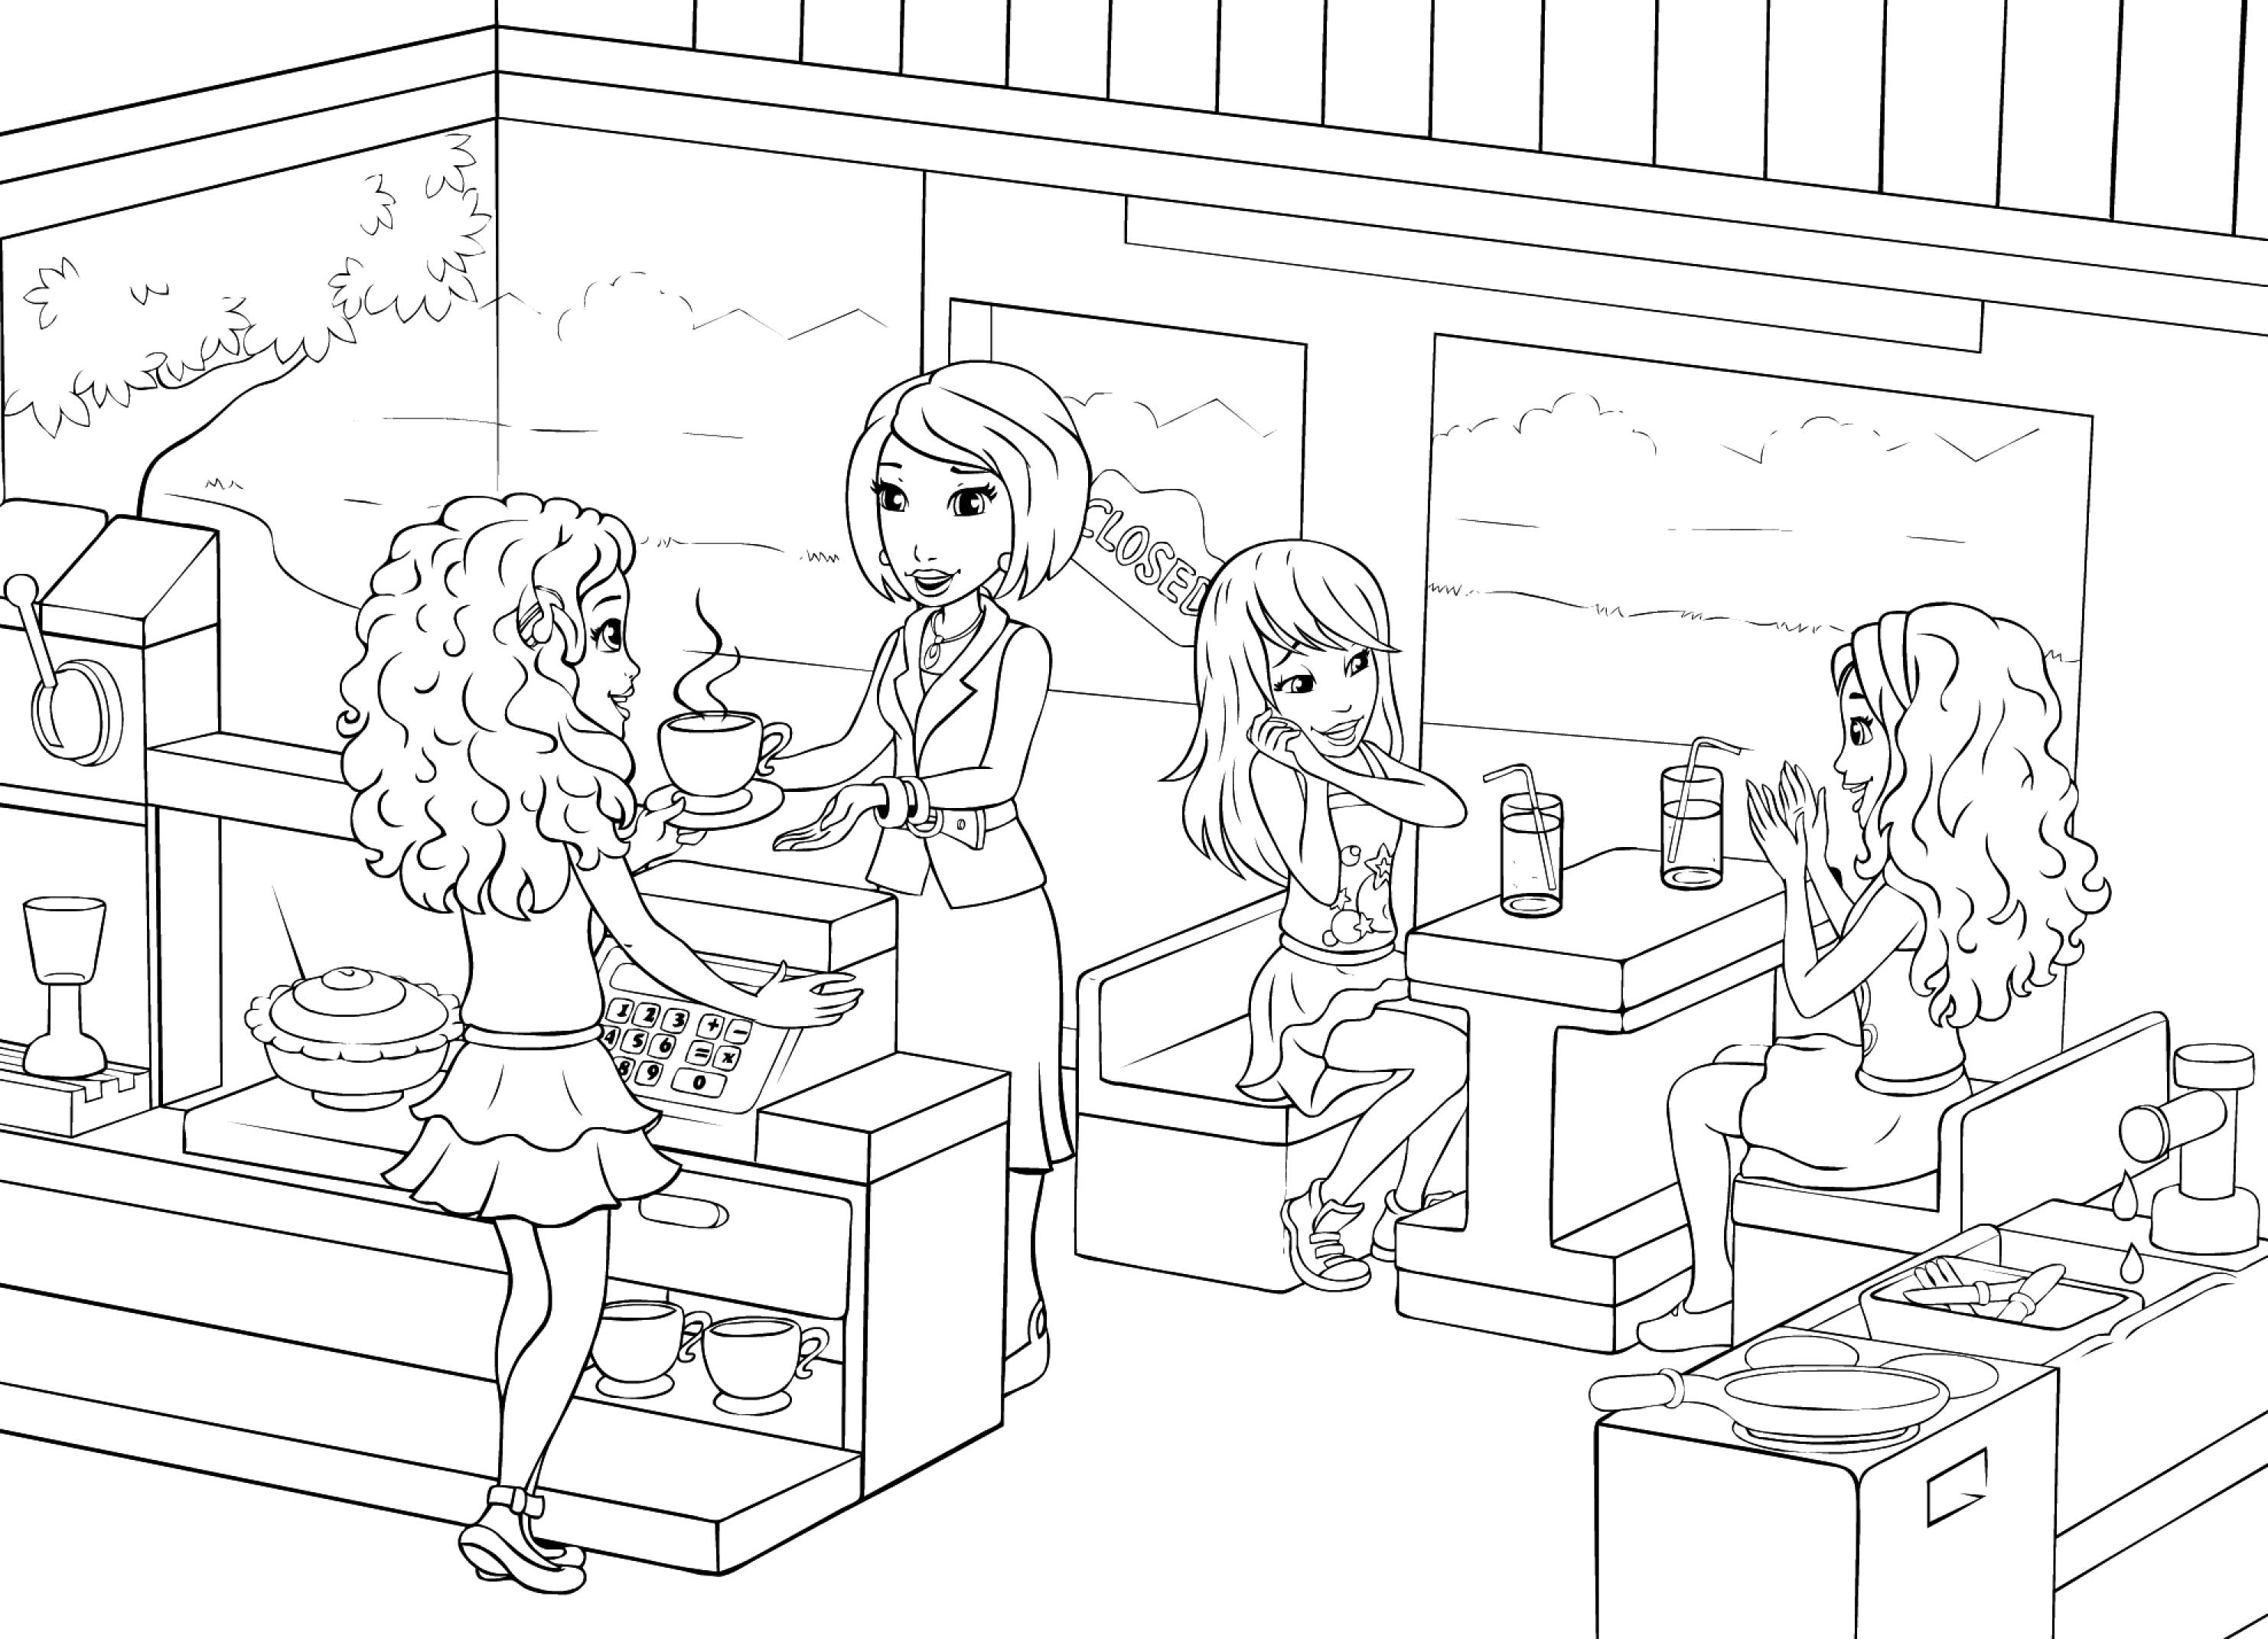 Lego Friends Printable Coloring Pages Lego Friends Coloring Pages Printable Free Coloring Home